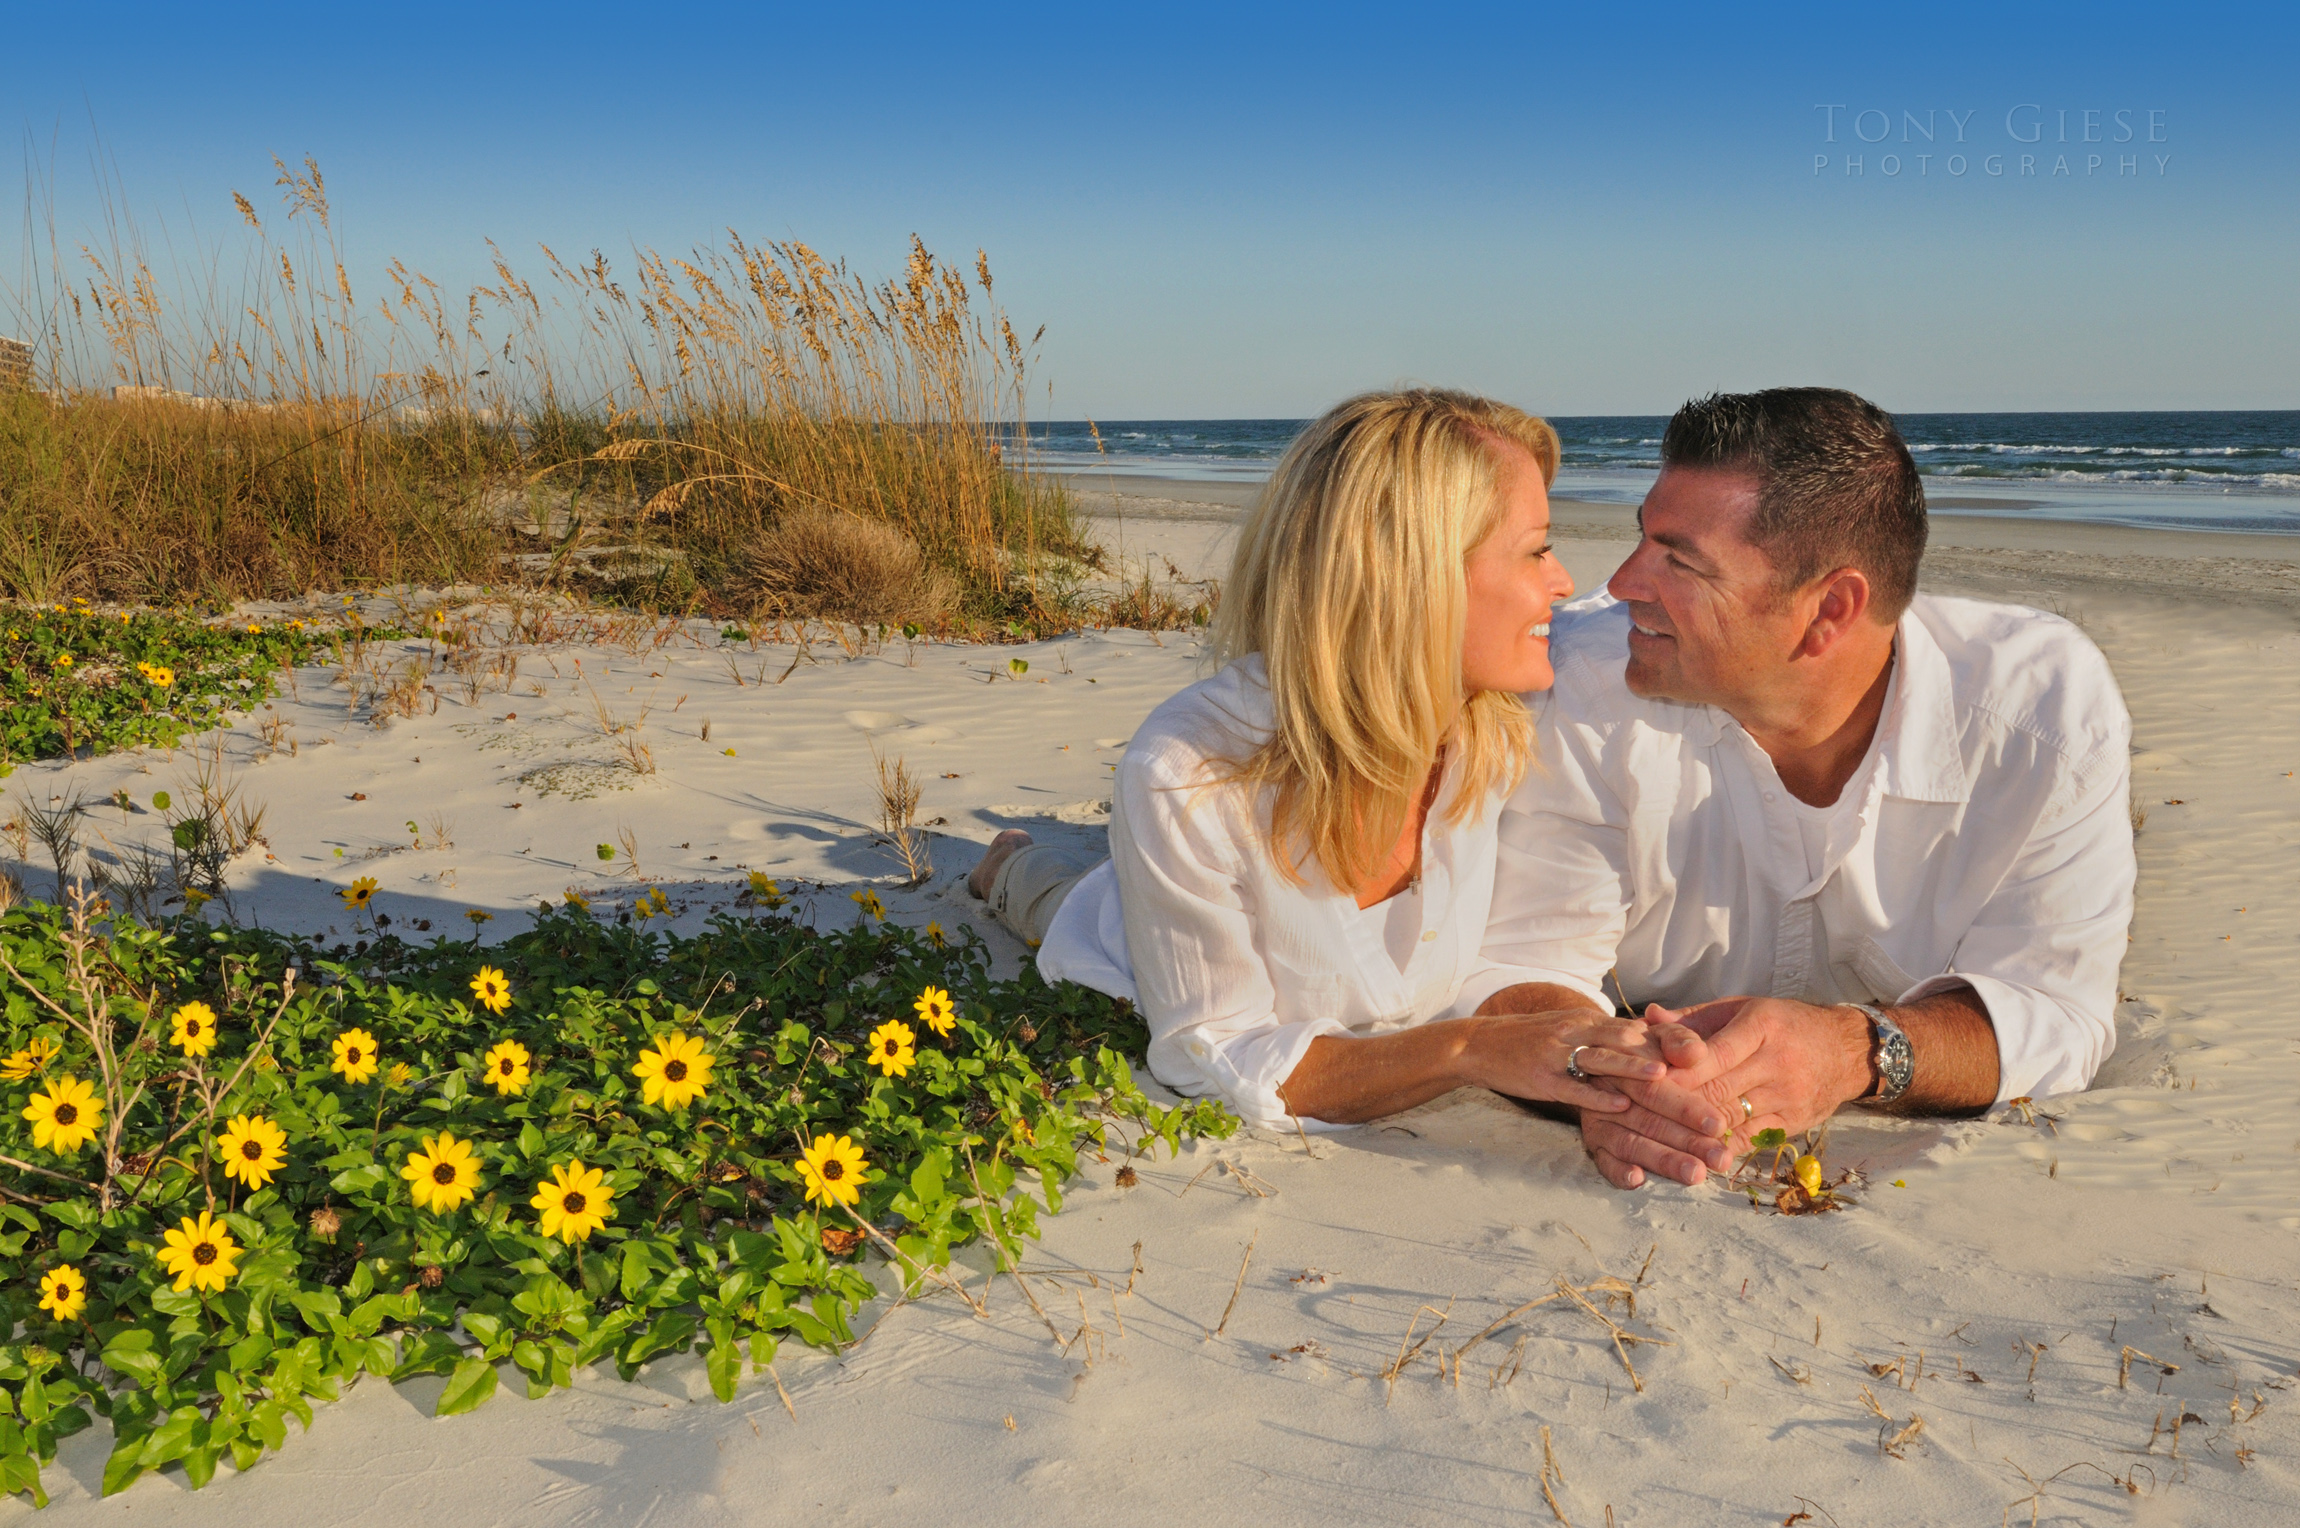 Romance on Daytona Beach, Florida.